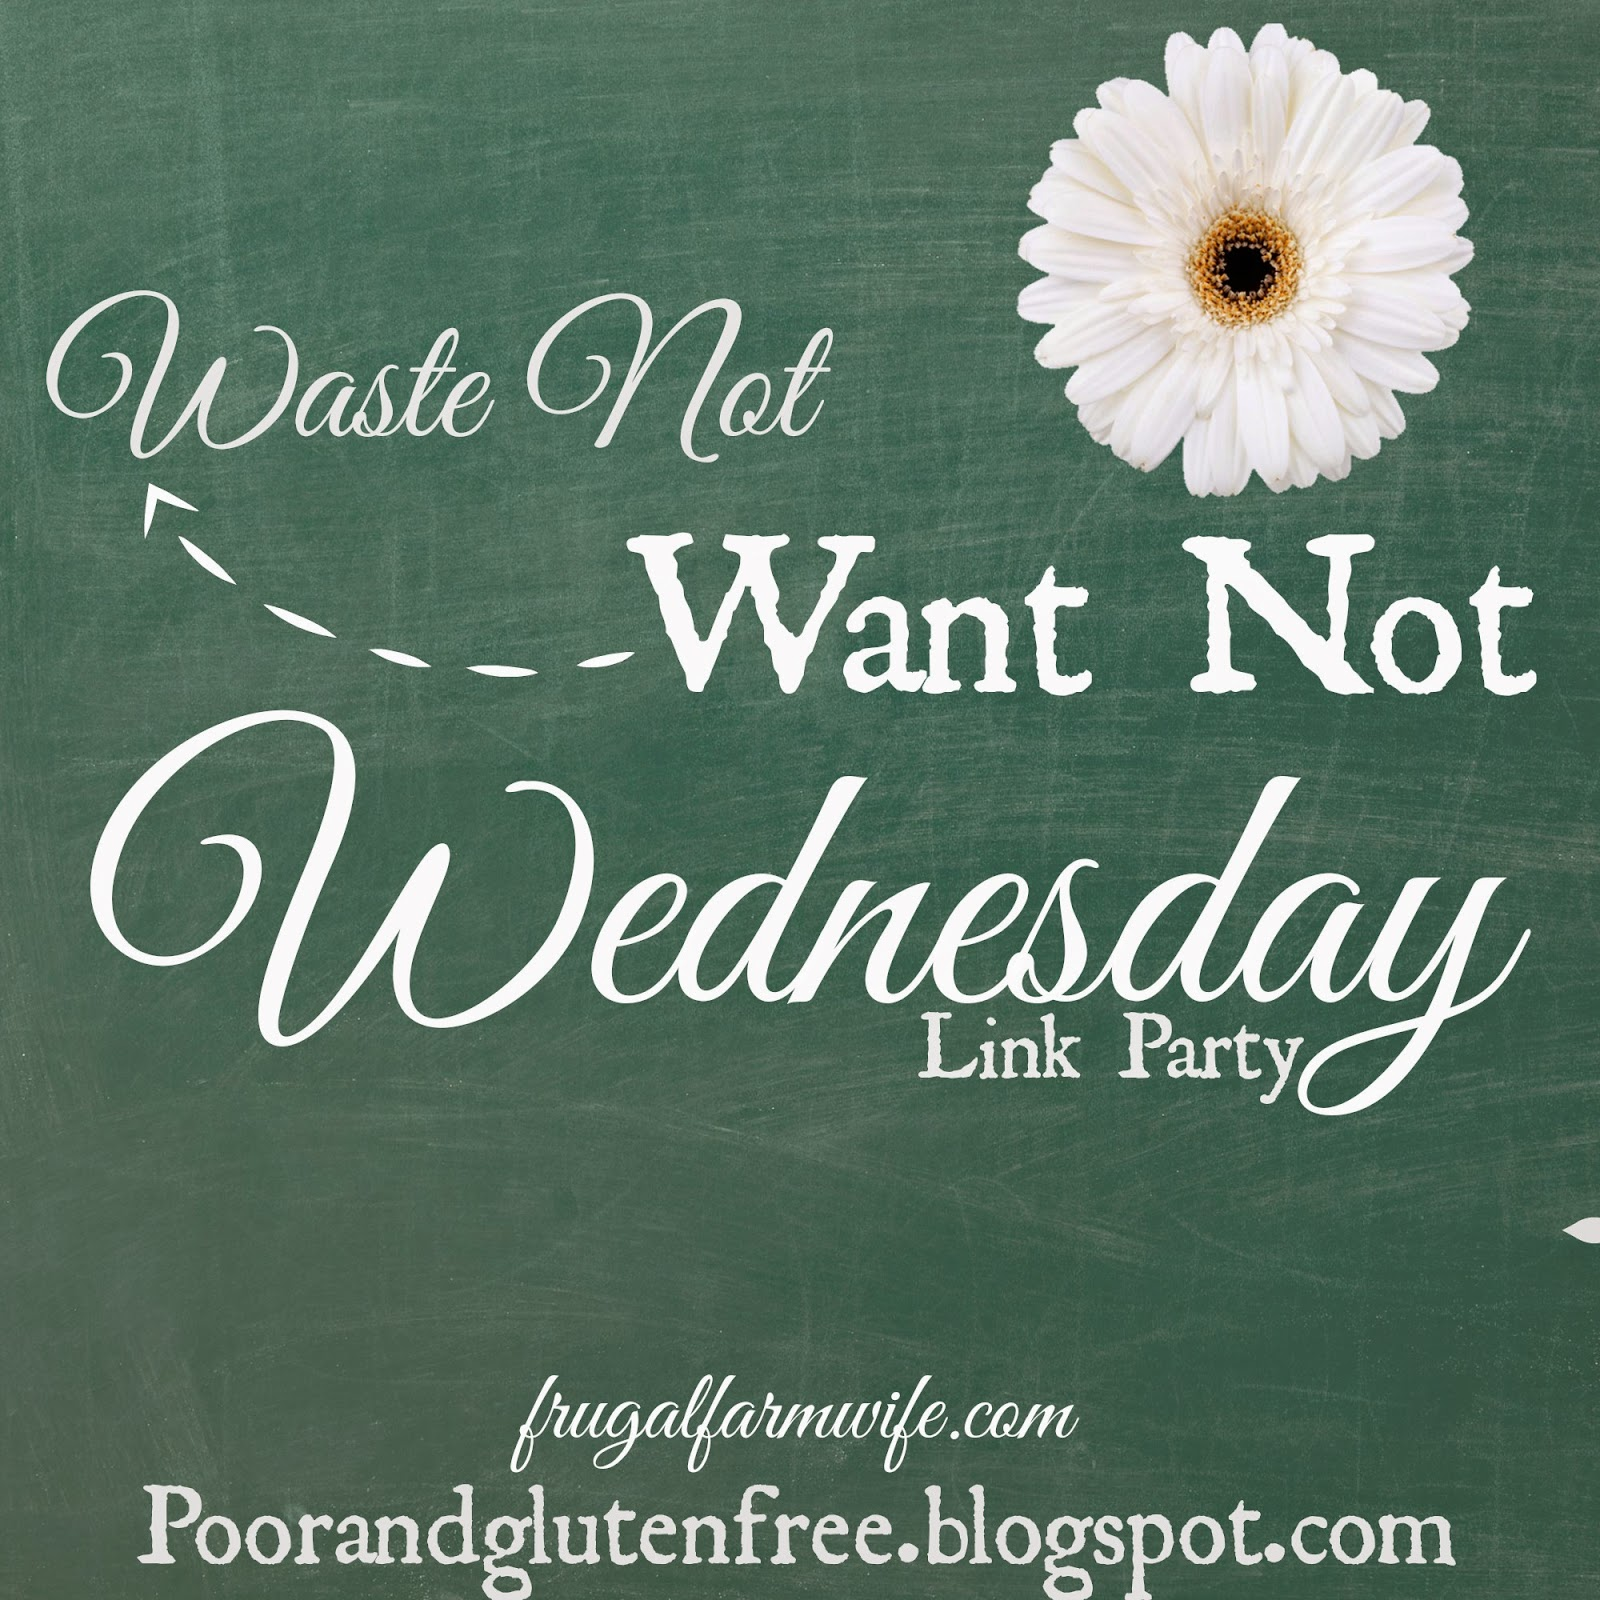 With oral allergy syndrome waste not want not wednesday is back